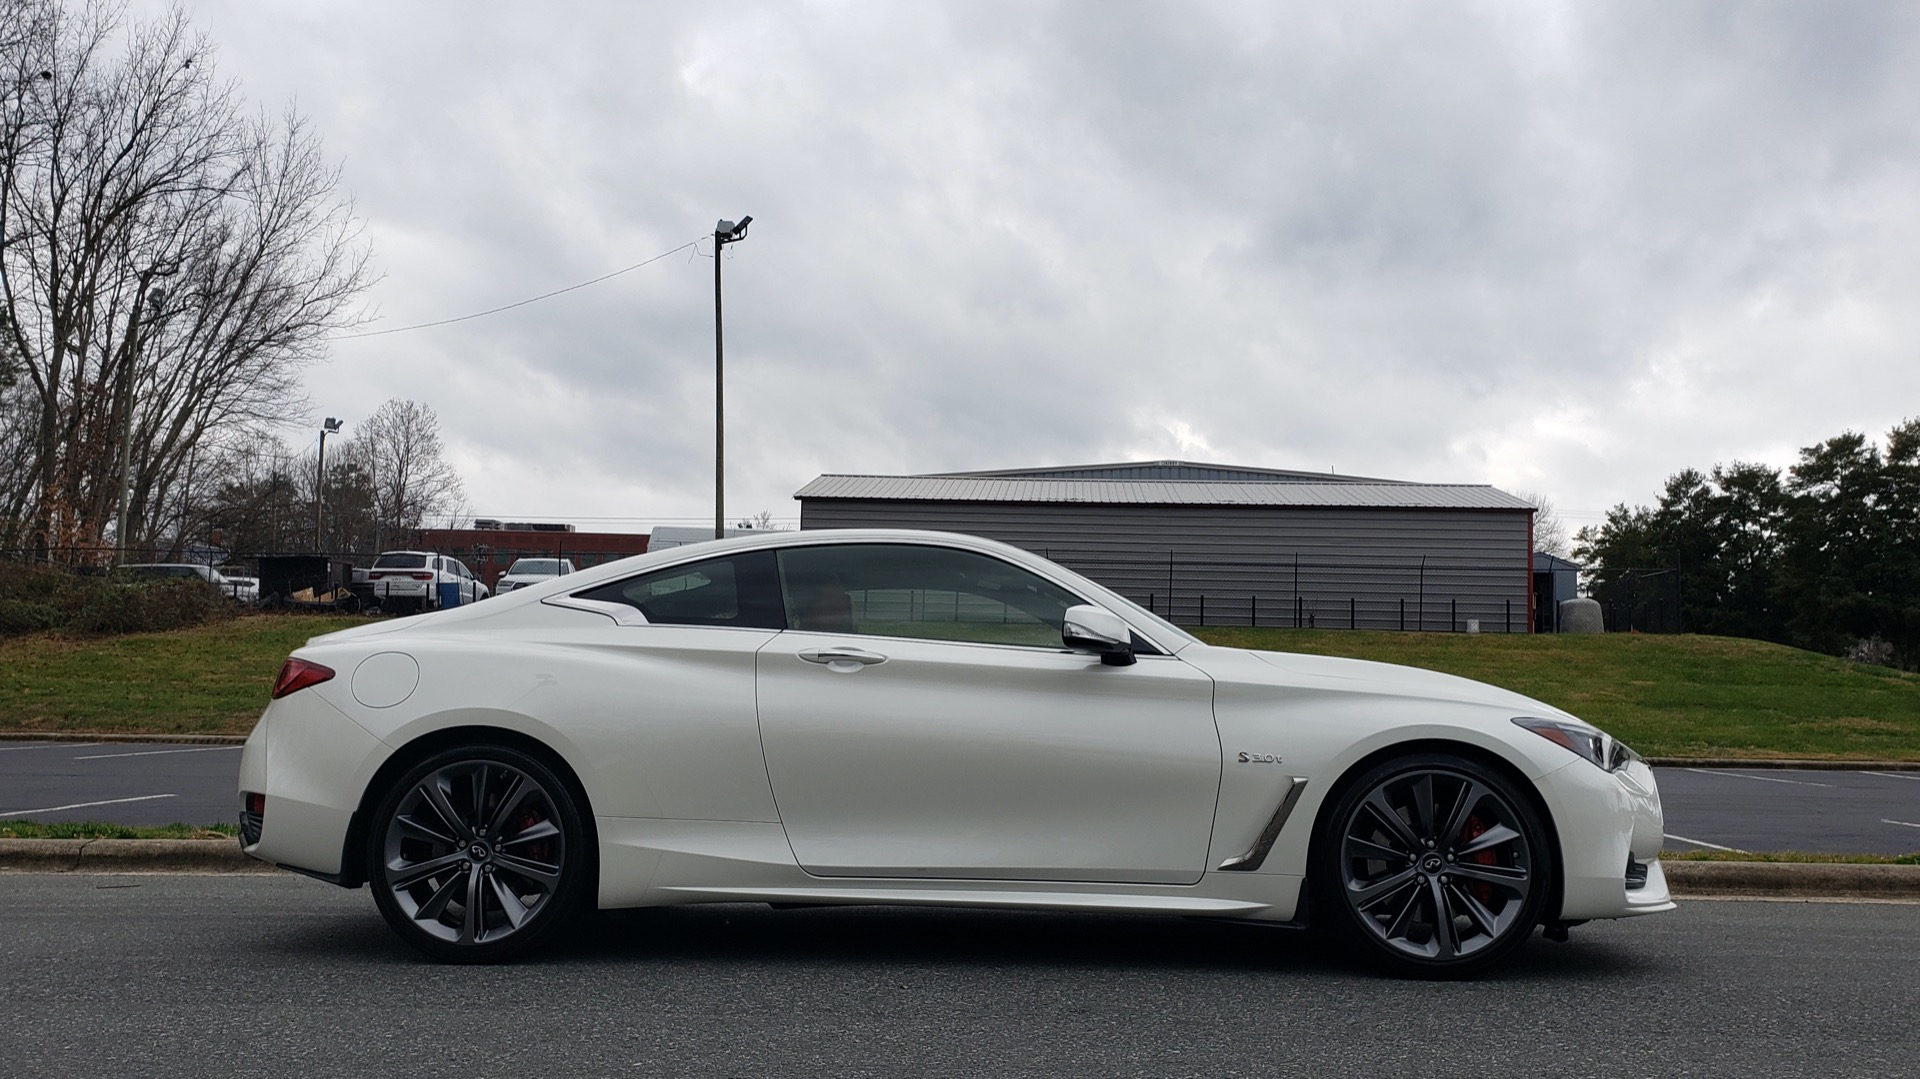 Used 2018 Infiniti Q60 RED SPORT 400 / SENSORY PKG / SUNROOF / NAV / REARVIEW for sale Sold at Formula Imports in Charlotte NC 28227 5